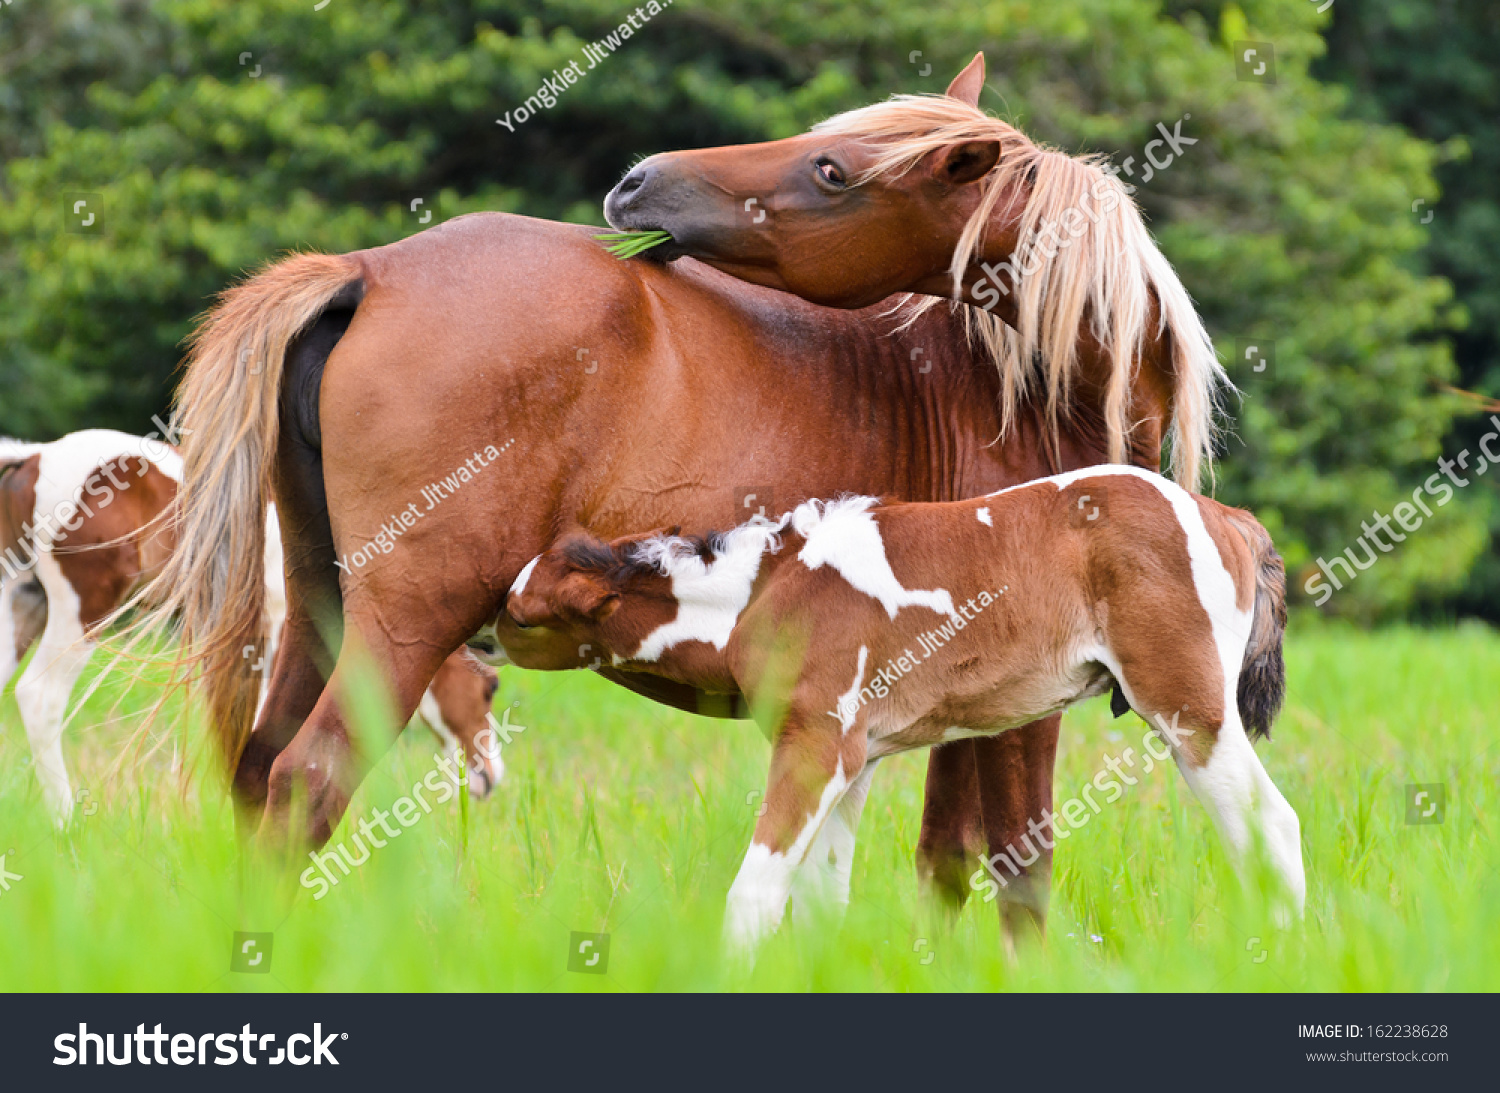 Animal Beautiful Nature Brown Baby Horse Stock Photo Edit Now 162238628